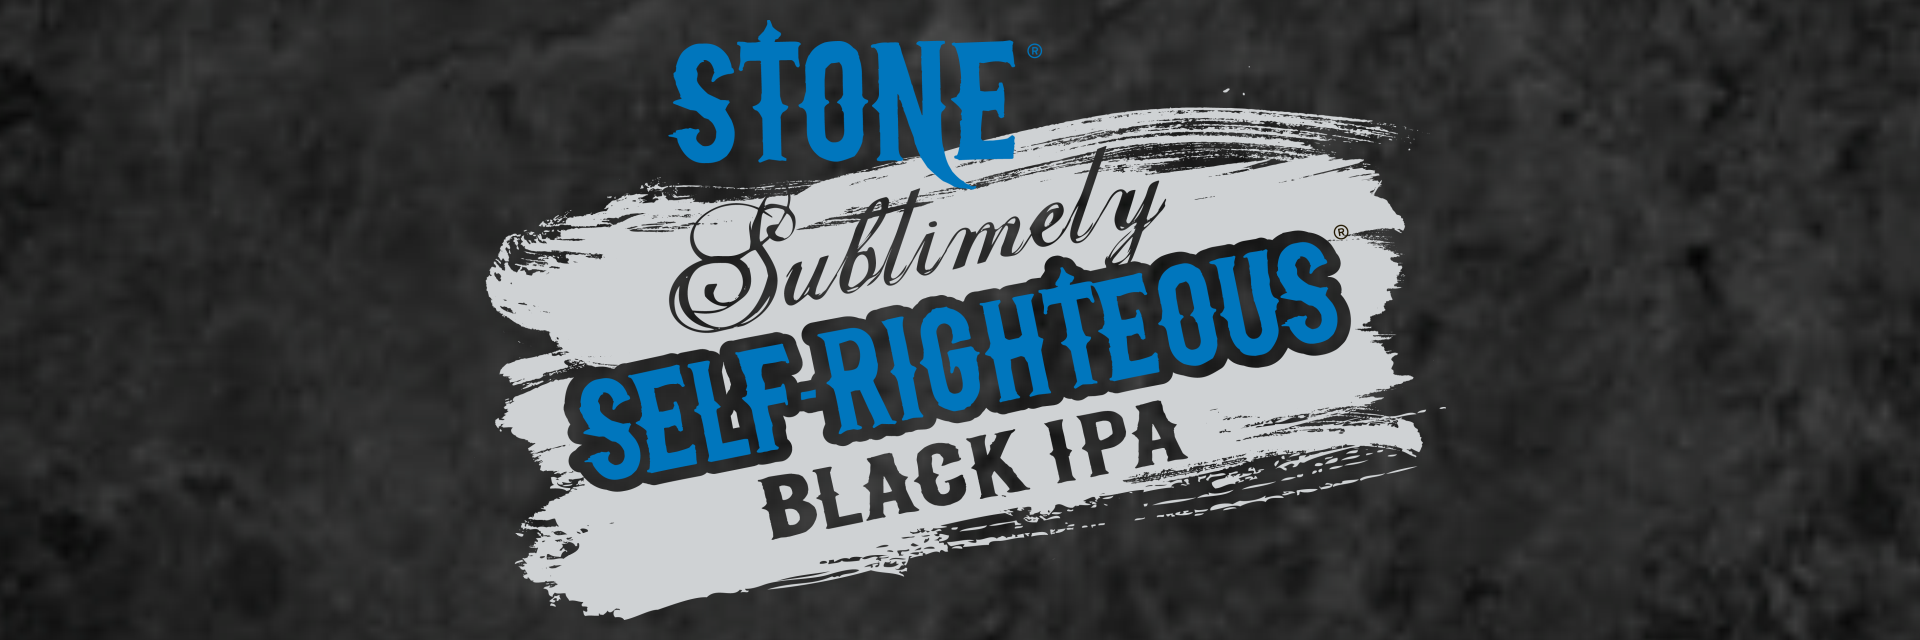 Stone Brewing Revives its #1 Most Requested Beer of All Time: Stone Sublimely Self-Righteous Black IPA